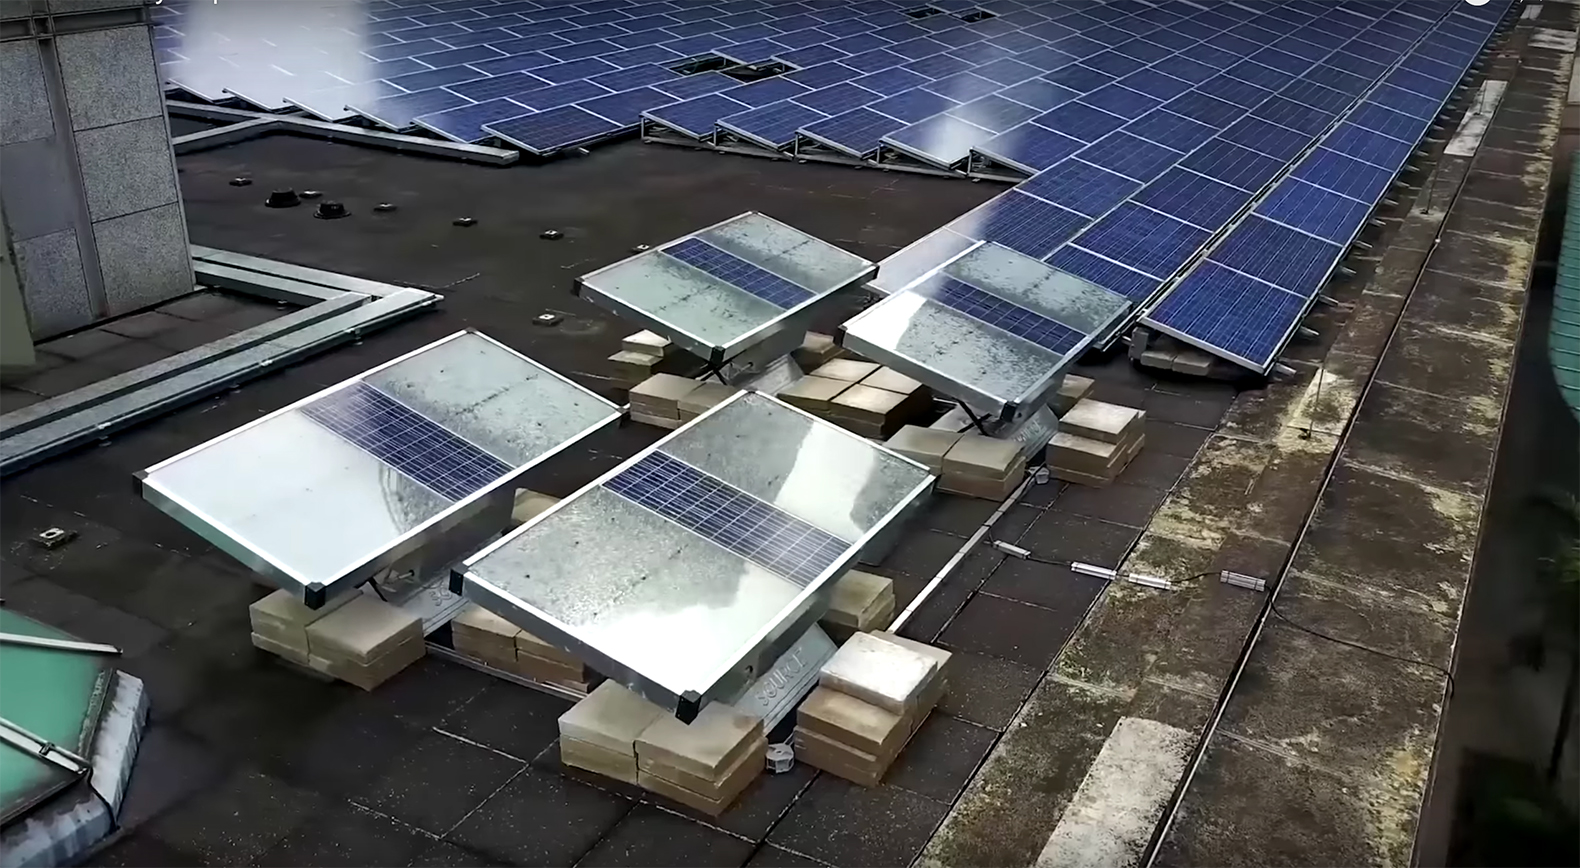 New rooftop solar hydropanels harvest drinking water and